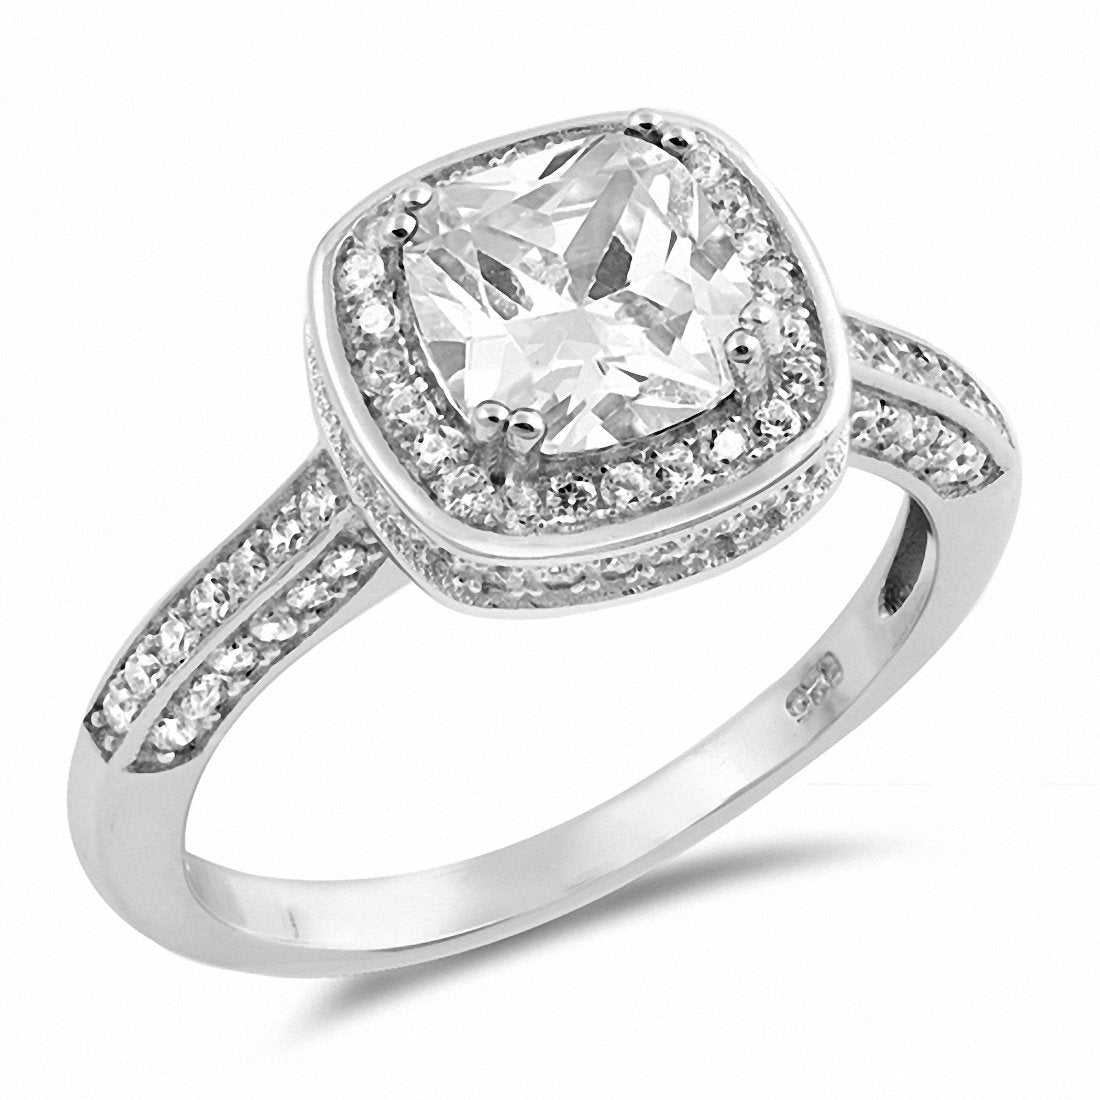 Halo Engagement Ring Cushion Round Cubic Zirconia 925 Sterling Silver Choose Color